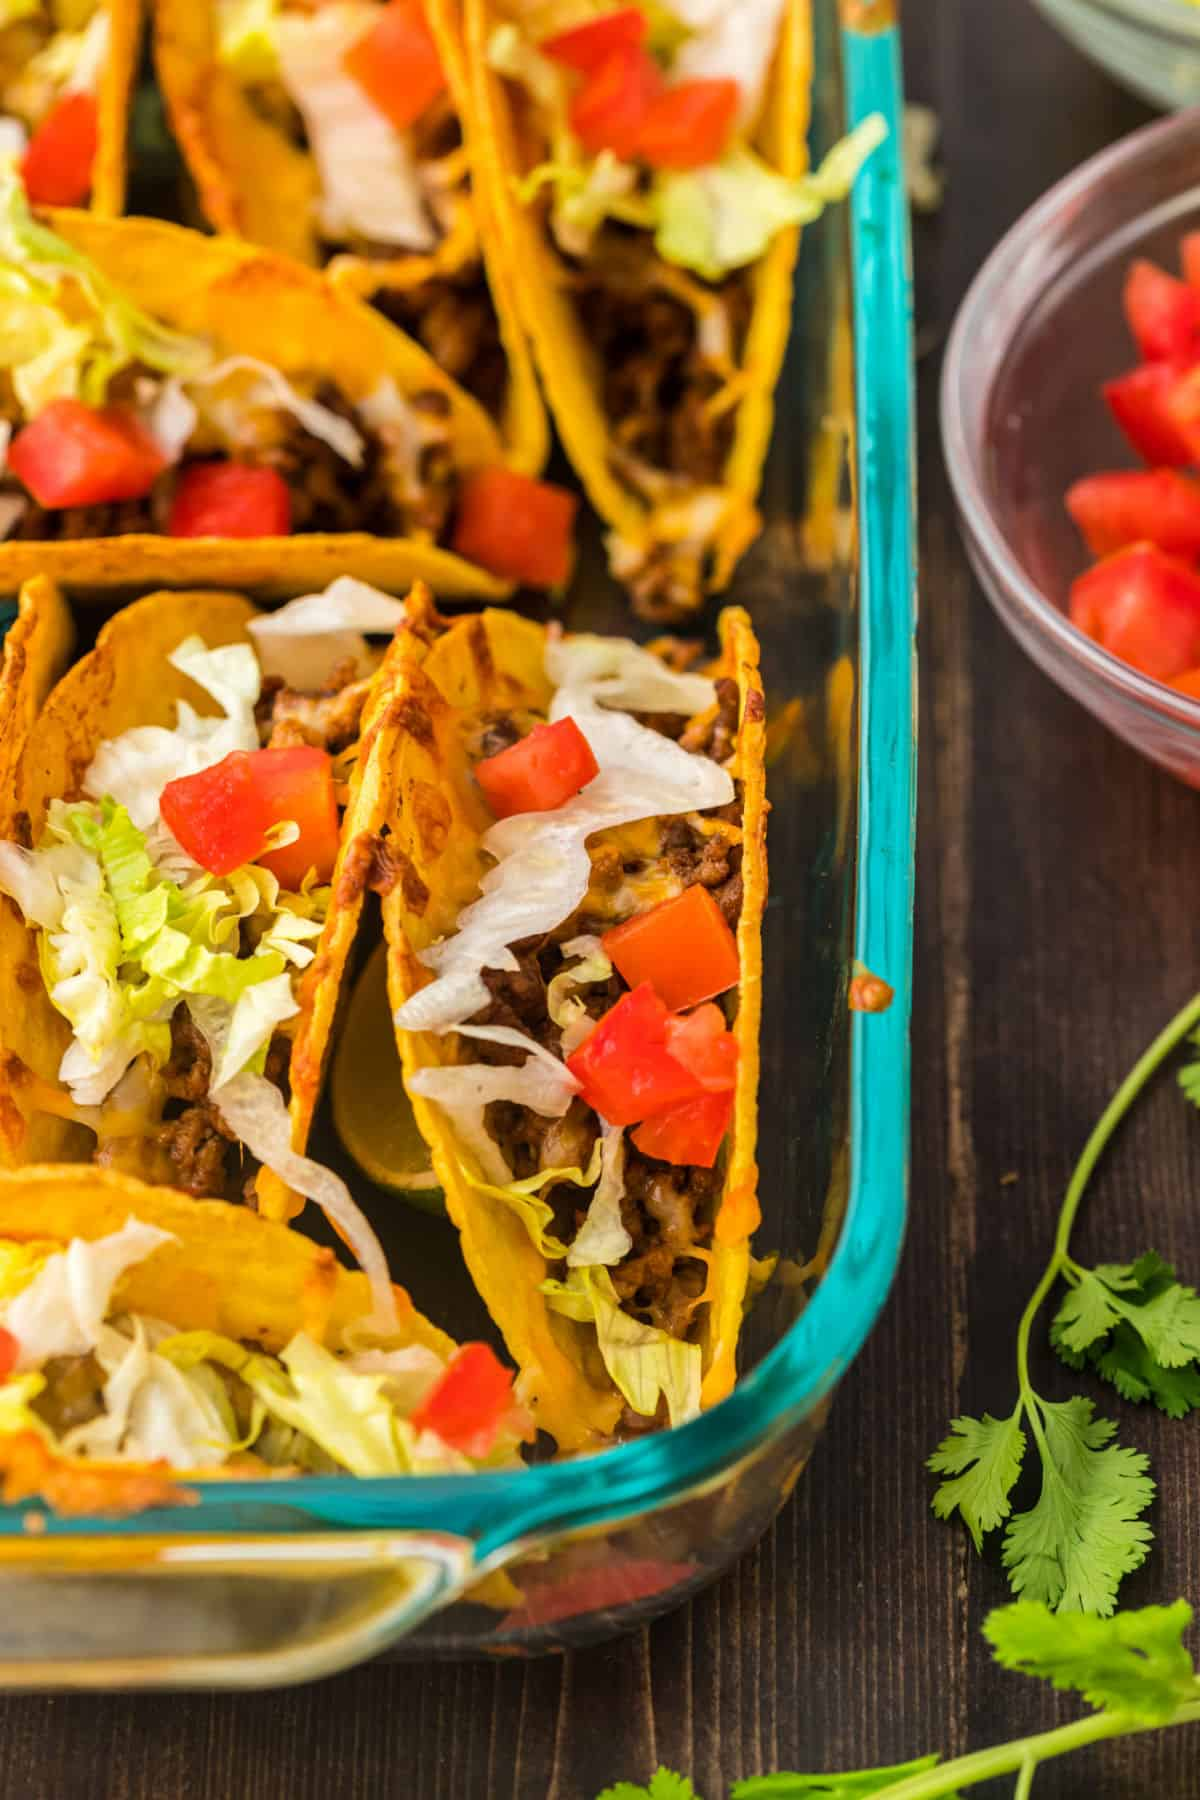 Baked tacos in clear glass baking dish,